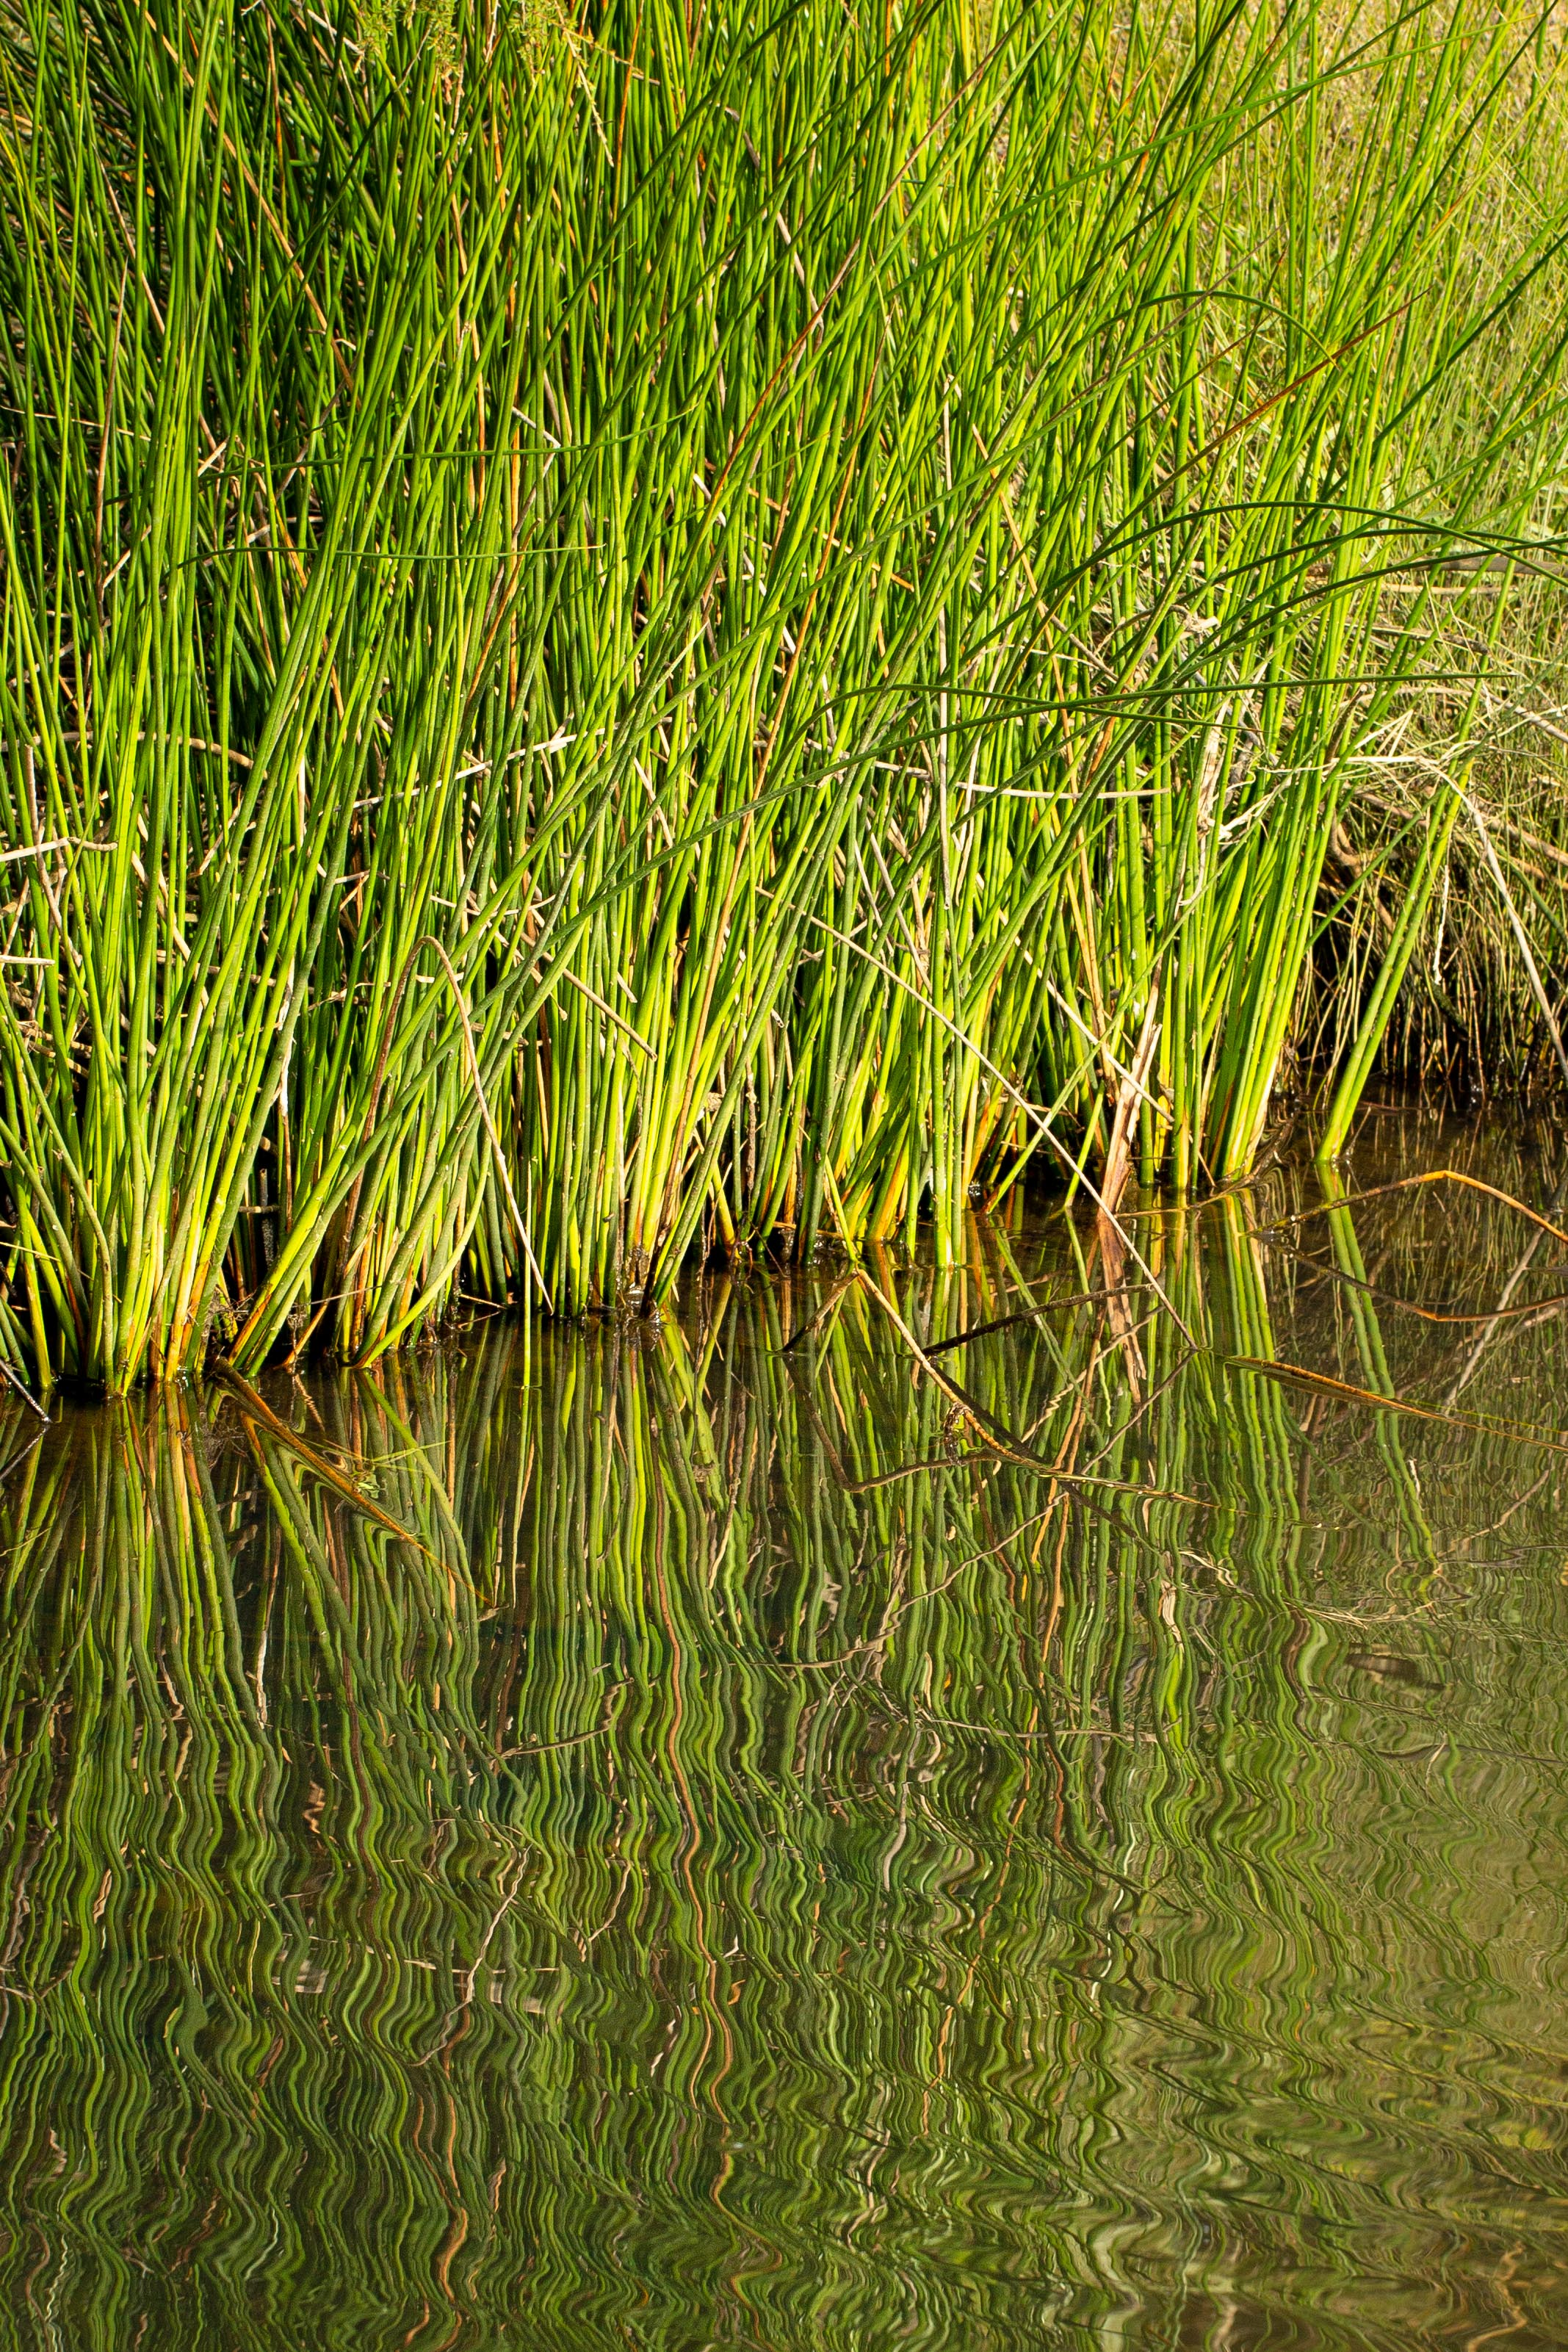 The Bay of Plenty is down to less than three percent of the original freshwater wetland habitat. Photo credit - Leigh Nicholas.